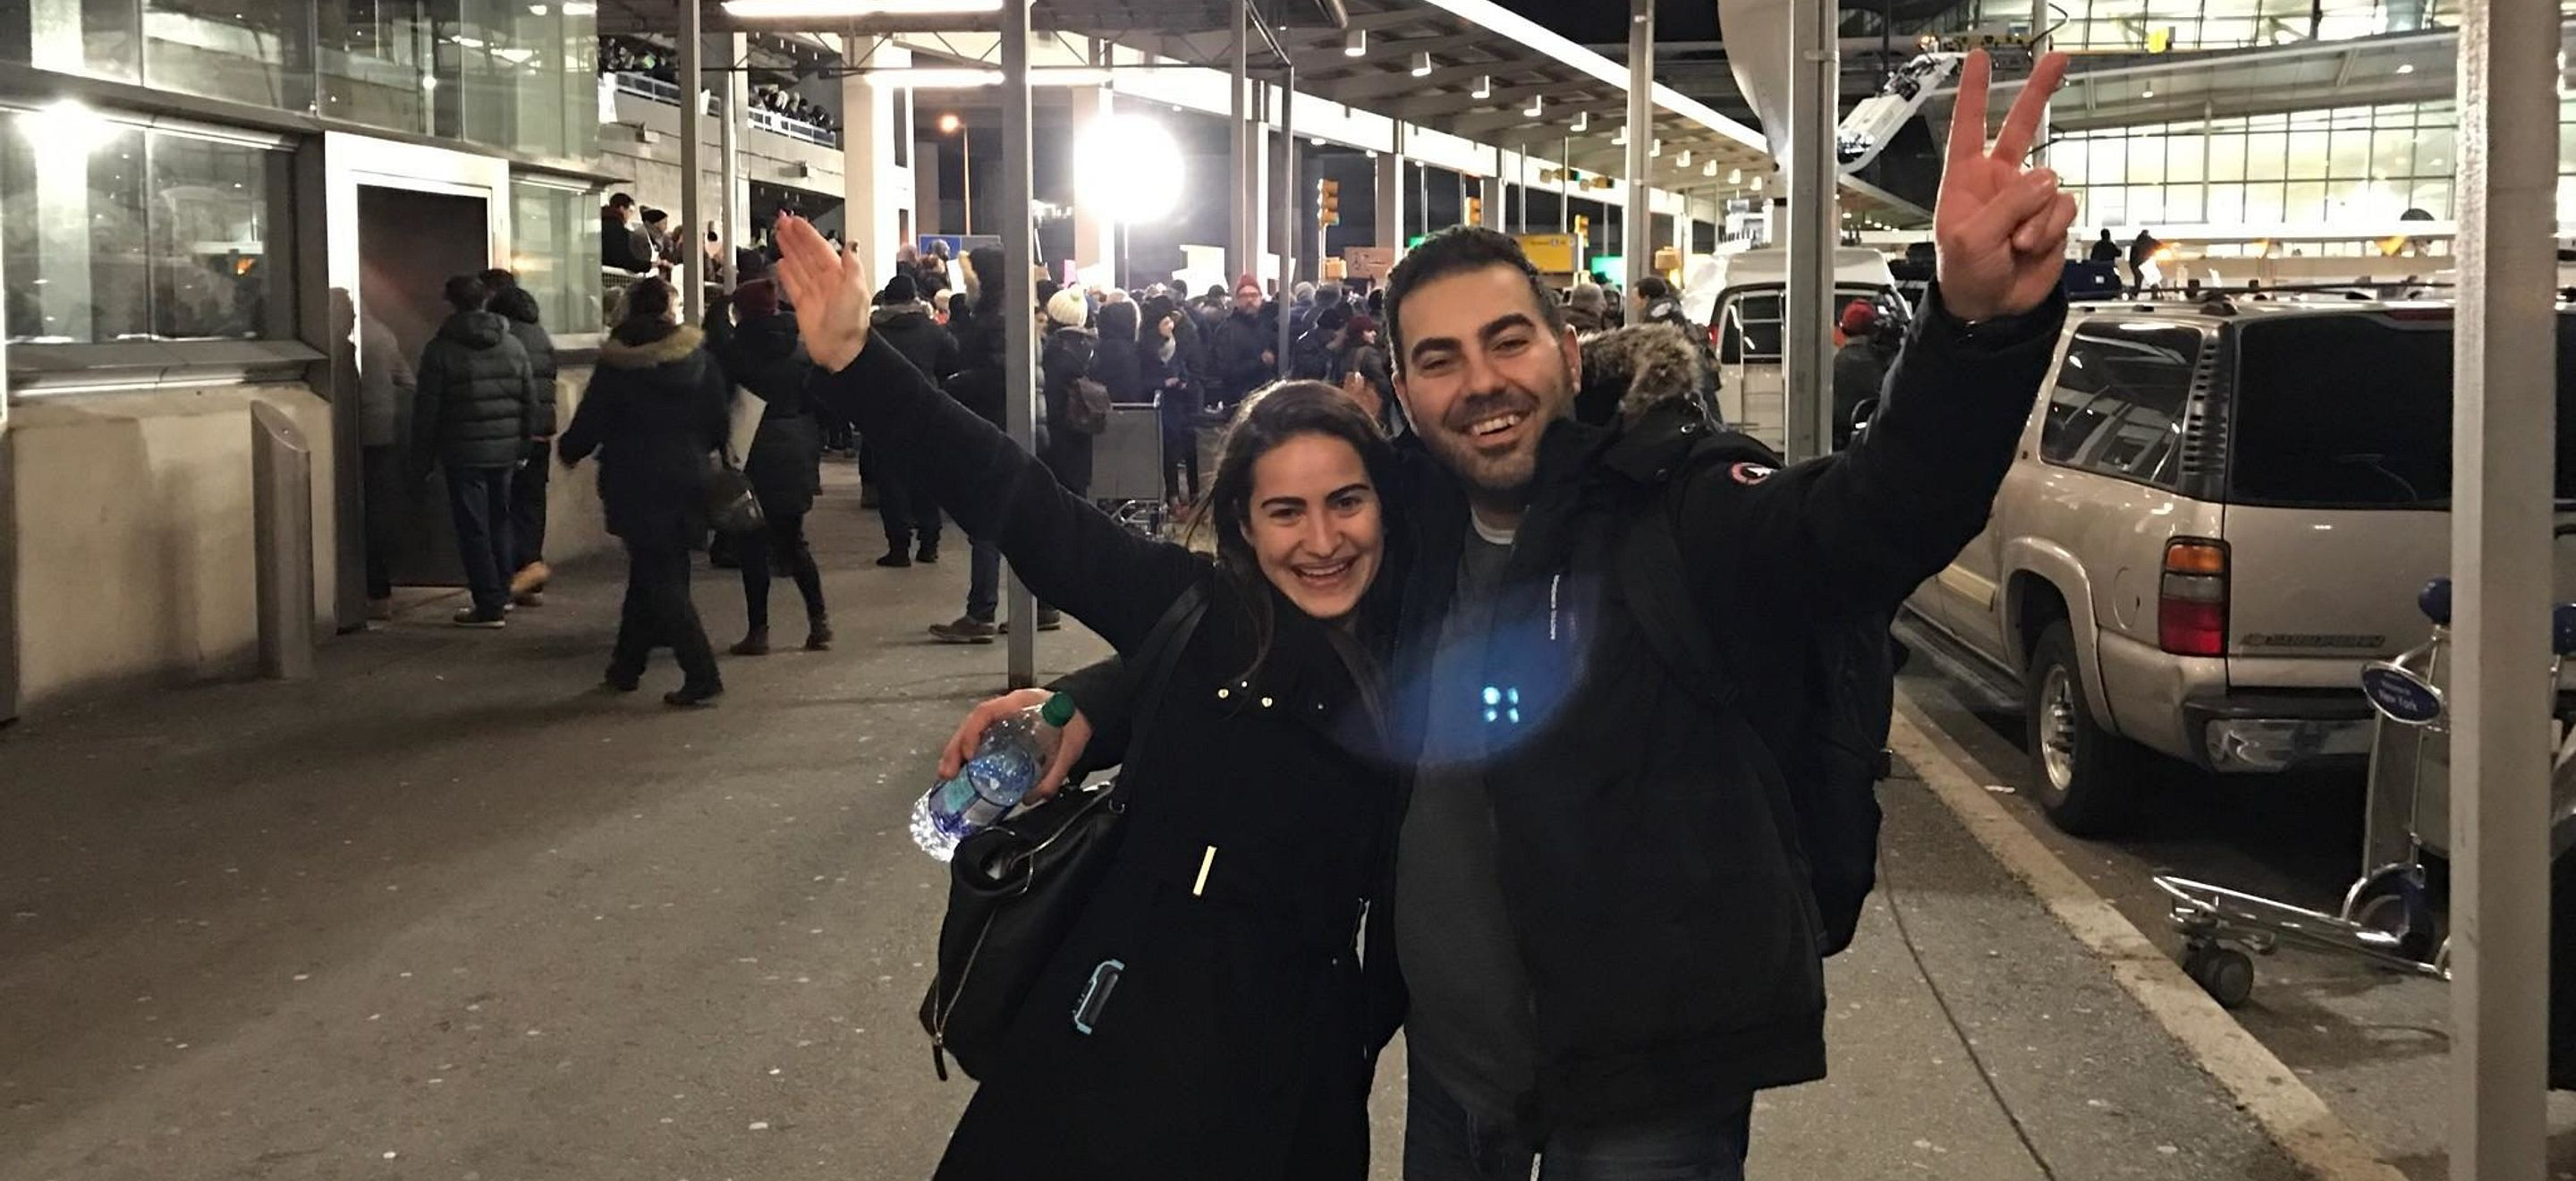 A woman and a man stand outside an airport with their arms raised in celebration. They both wear winter coats.